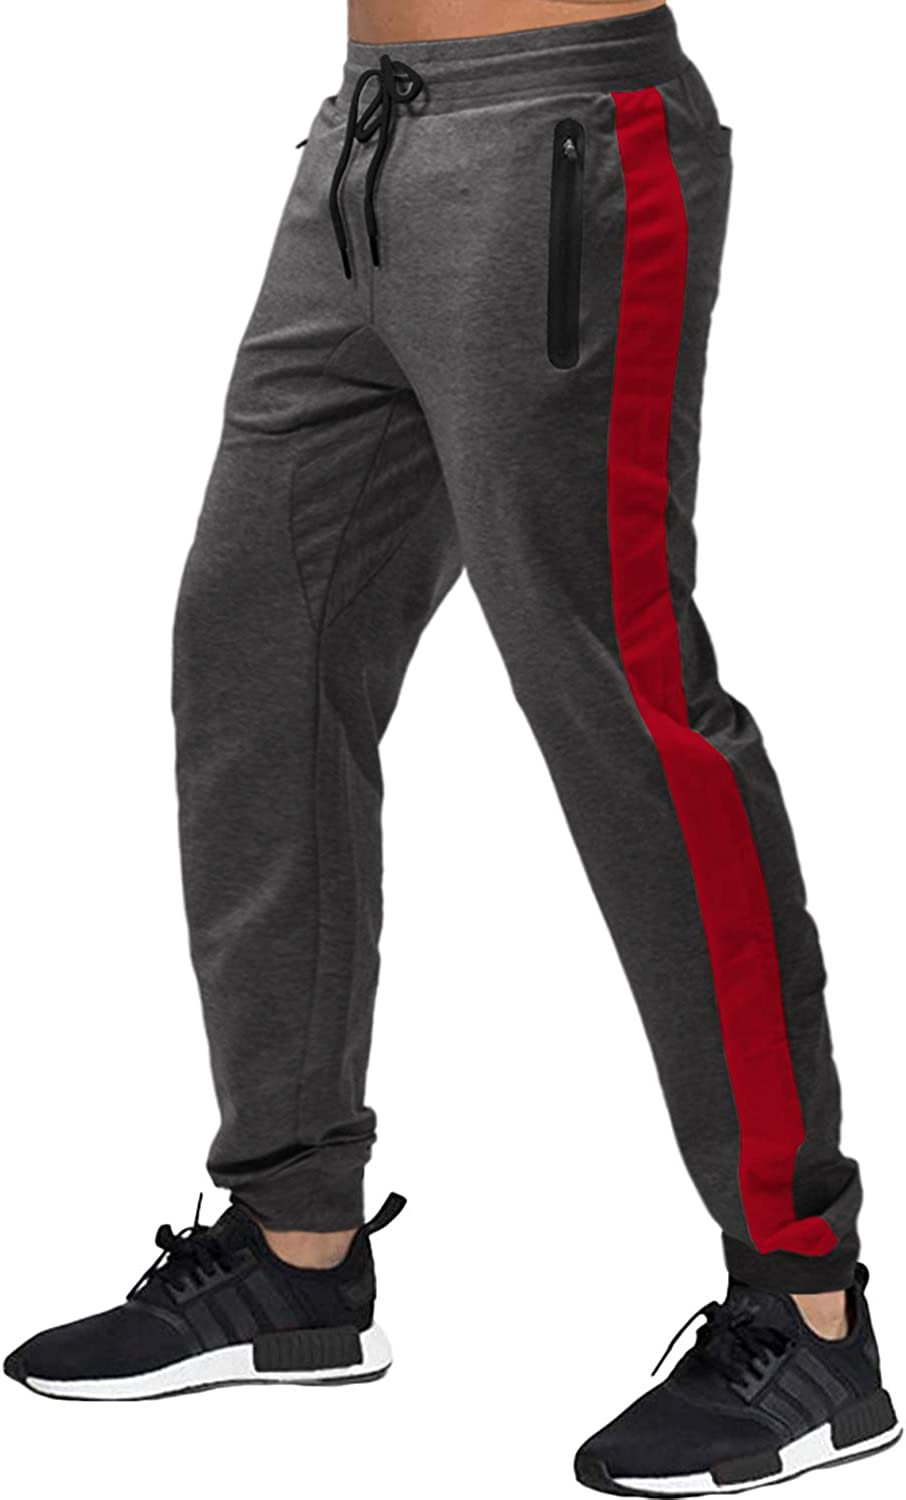 Houshelp Mens Running Jogger Pants Casual Sweatpants Gym Workout Track Pants Leather Trousers Sweatpants with Pockets